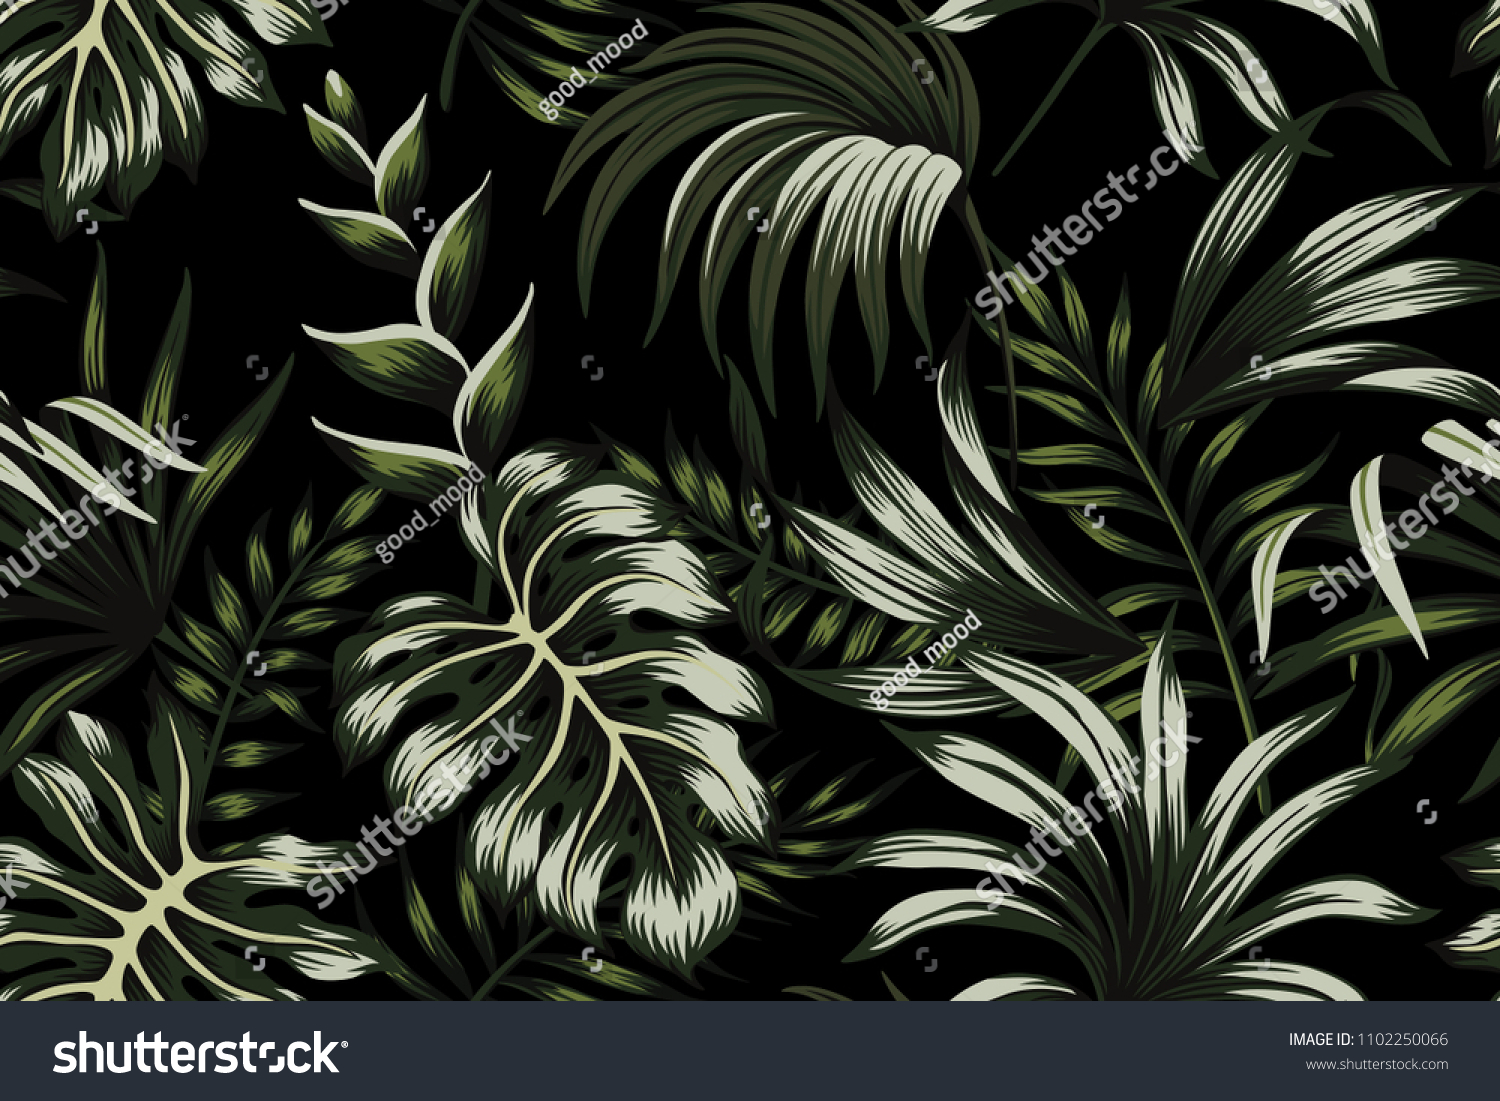 Tropical Dark Green Palm Leaves Seamless Pattern Black Background Exotic Wallpaper